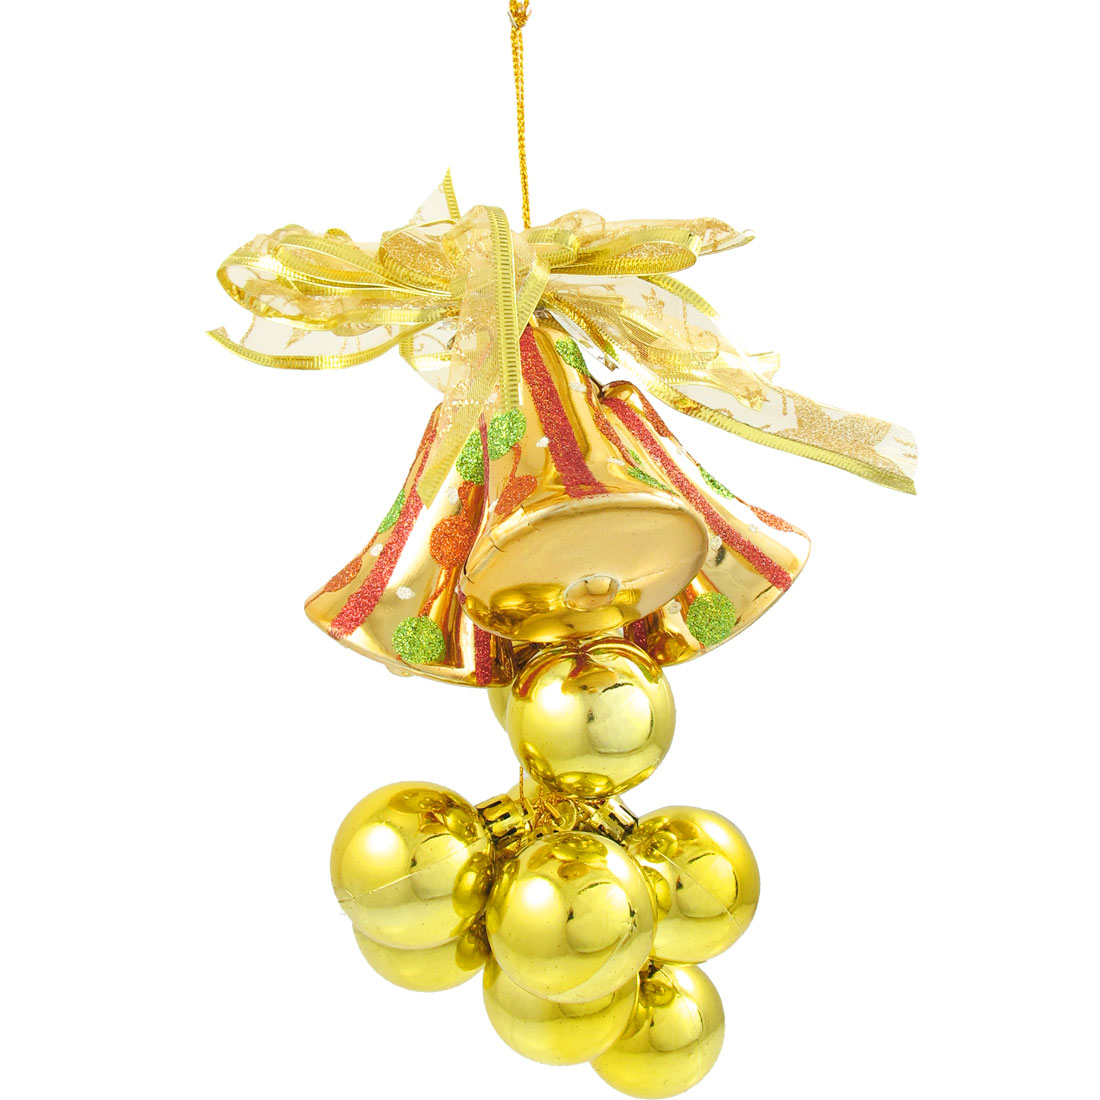 Charming Gift Glittery Gold Tone Balls Decor Chrismas Tree Hanging Ornament